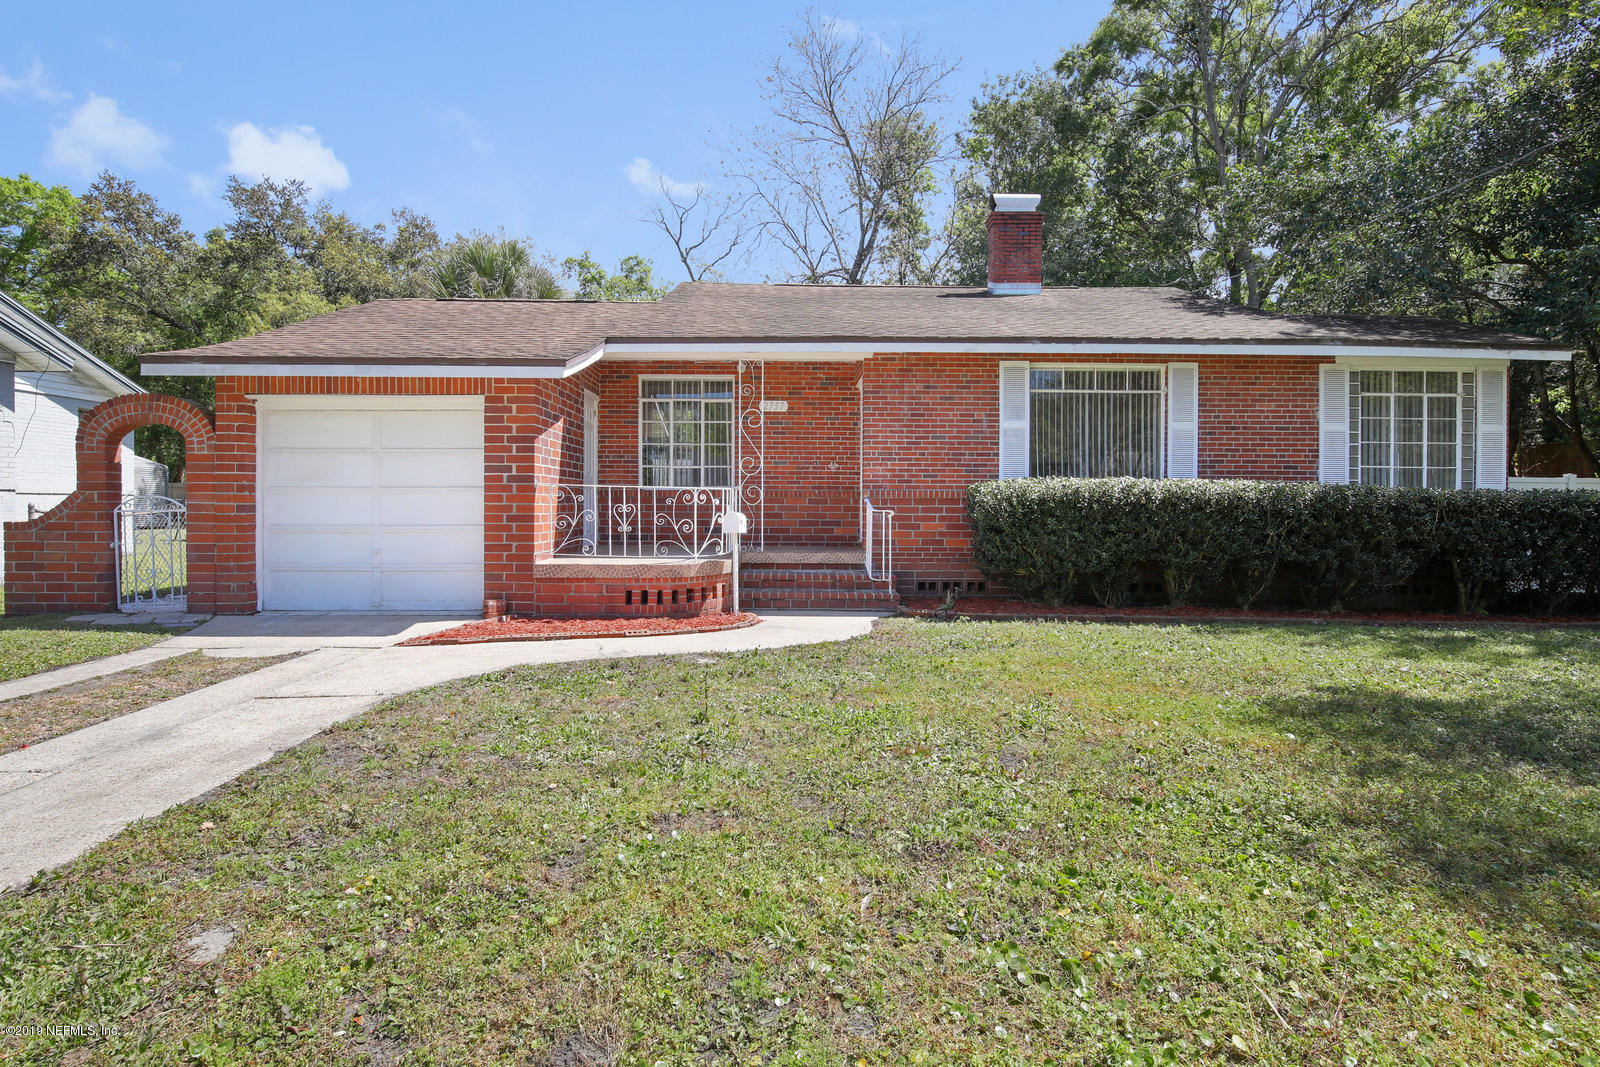 2757 GLEN MAWR, JACKSONVILLE, FLORIDA 32207, 2 Bedrooms Bedrooms, ,1 BathroomBathrooms,Residential - single family,For sale,GLEN MAWR,986203